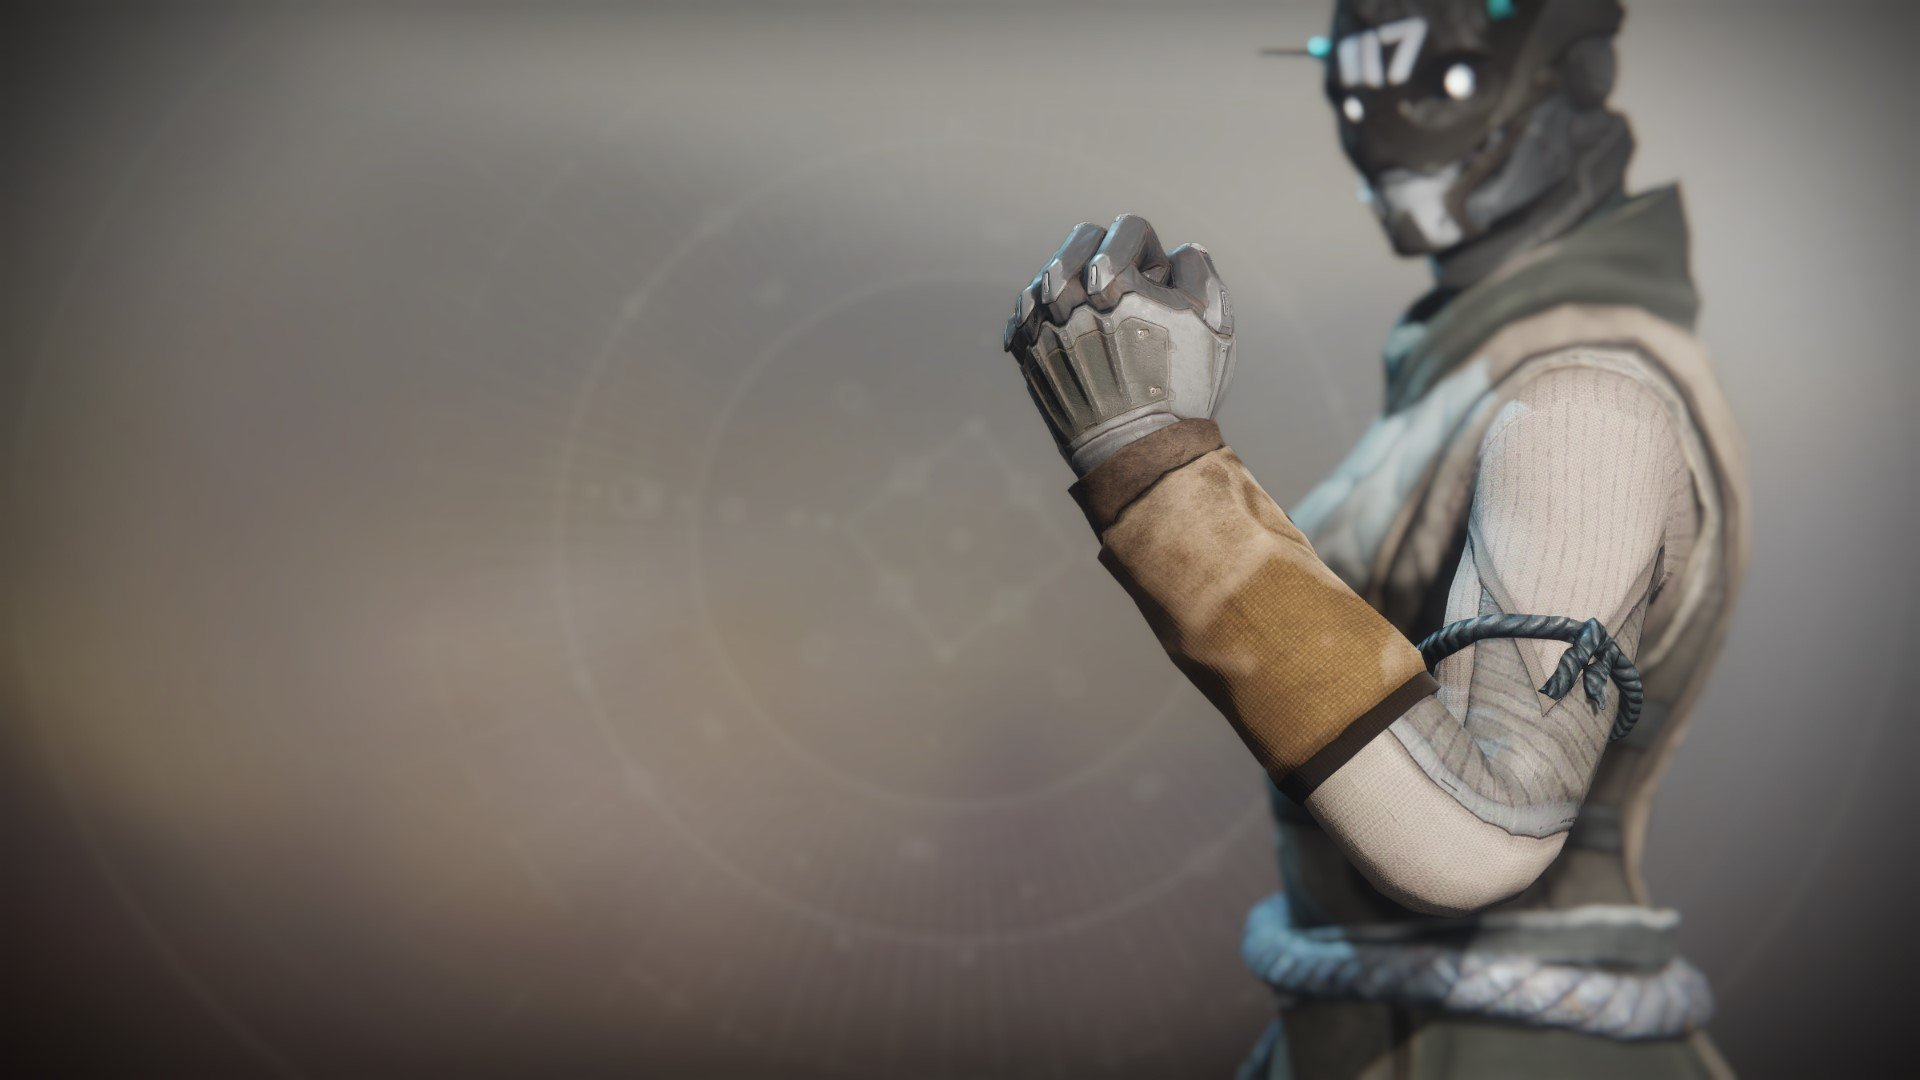 An in-game render of the Ancient Apocalypse Gloves.